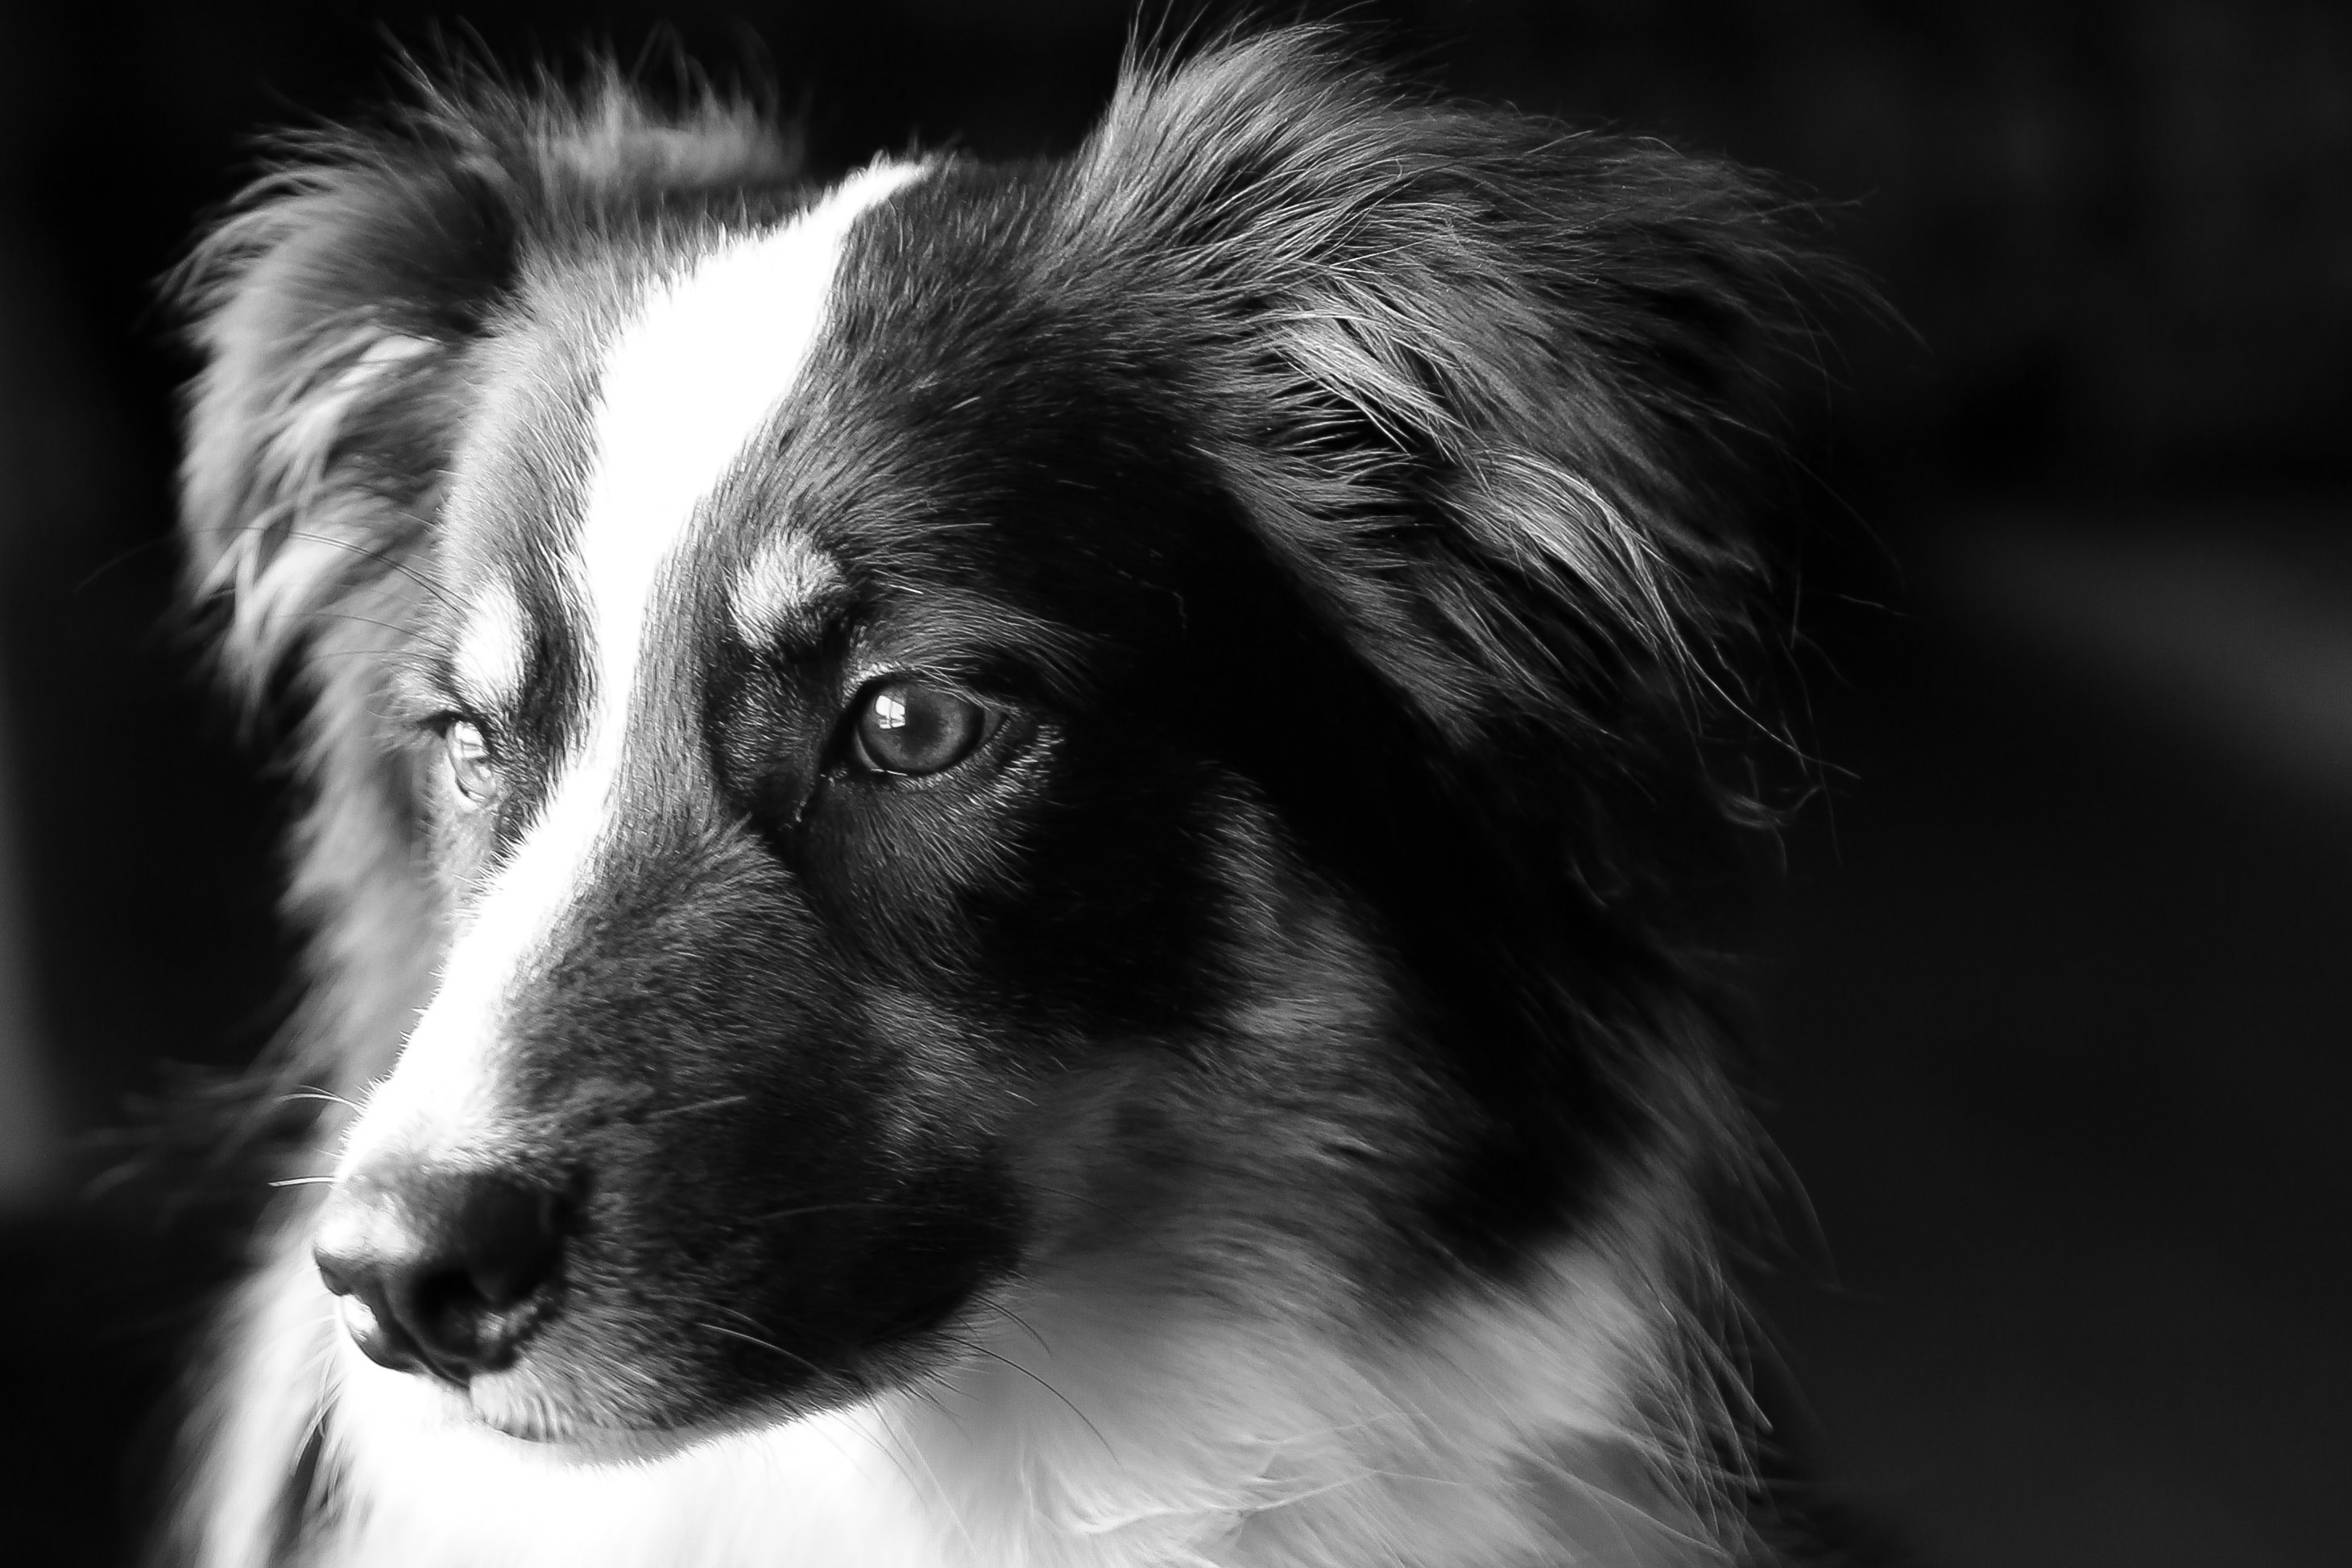 Black and white dog cute face stills